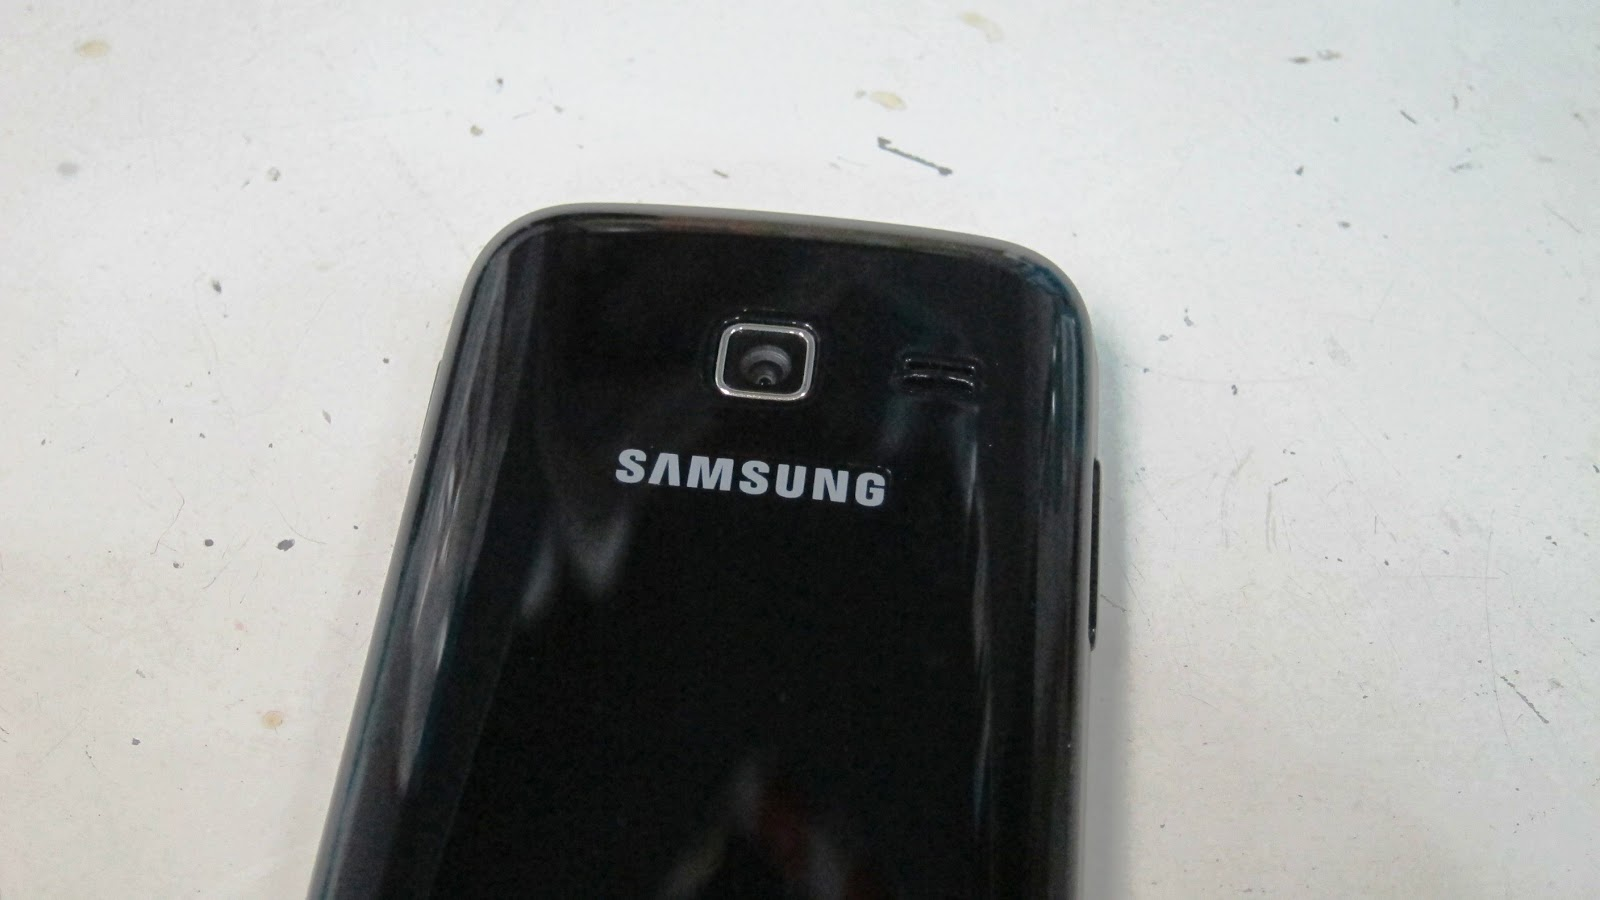 Gallery for gt samsung galaxy s6102 - This Phone Uses The Normal Music Player That Most Samsung Phones Have It Categorizes And Arranges The Audio Files By Artists Songs Playlist And Albums